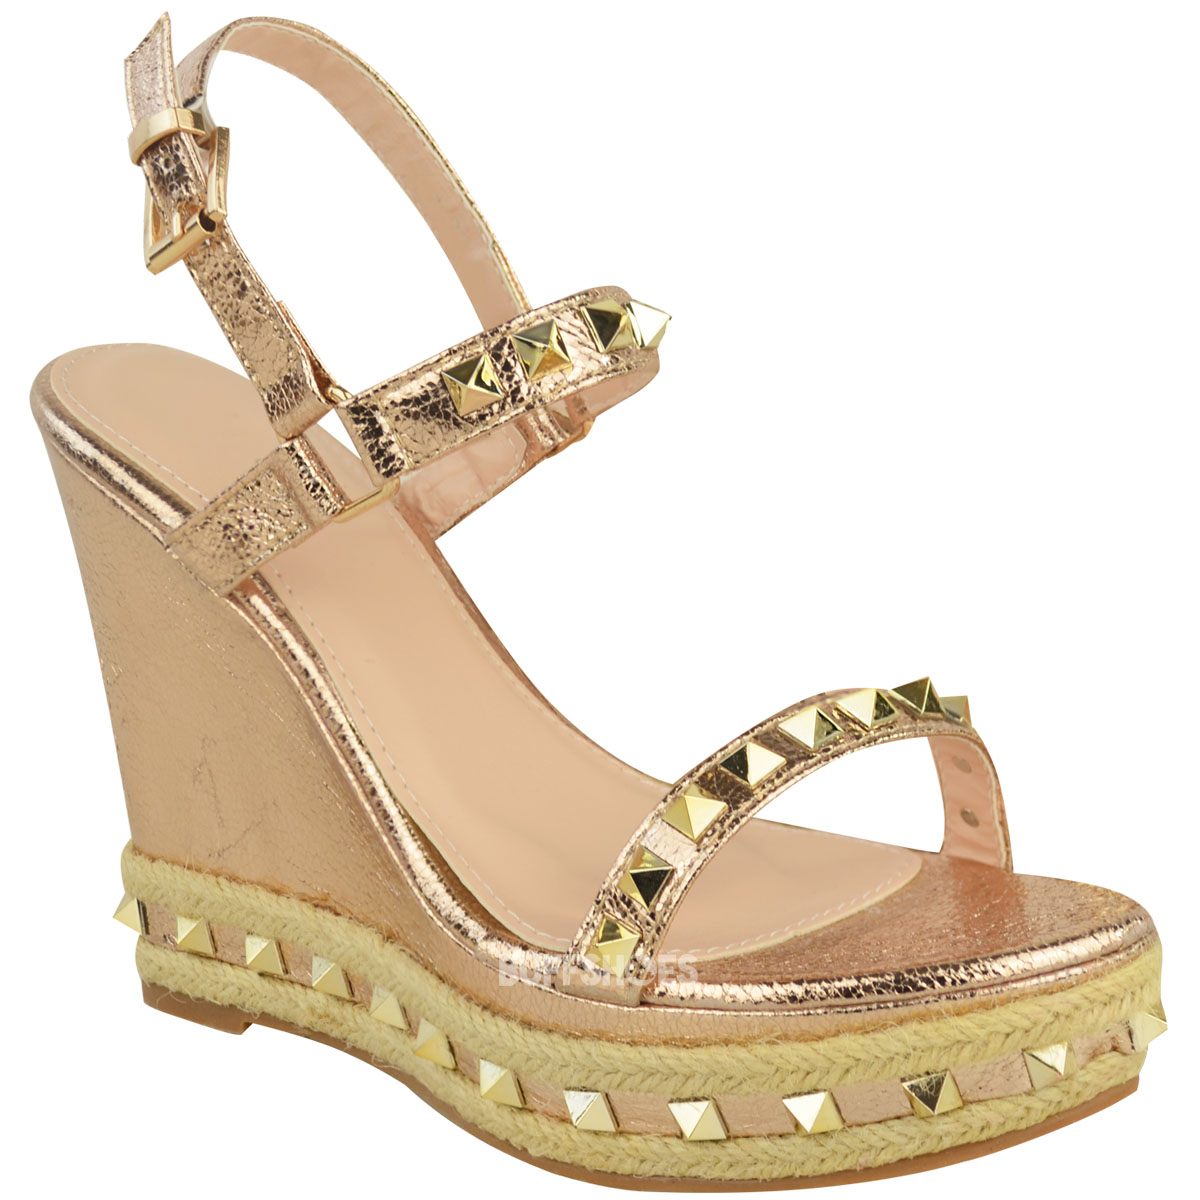 Find a great selection of women's espadrilles at dirtyinstalzonevx6.ga by Soludos, Tory Burch, Sam Edelman and more. Shop for espadrille flats, espadrille wedges, and espadrille .